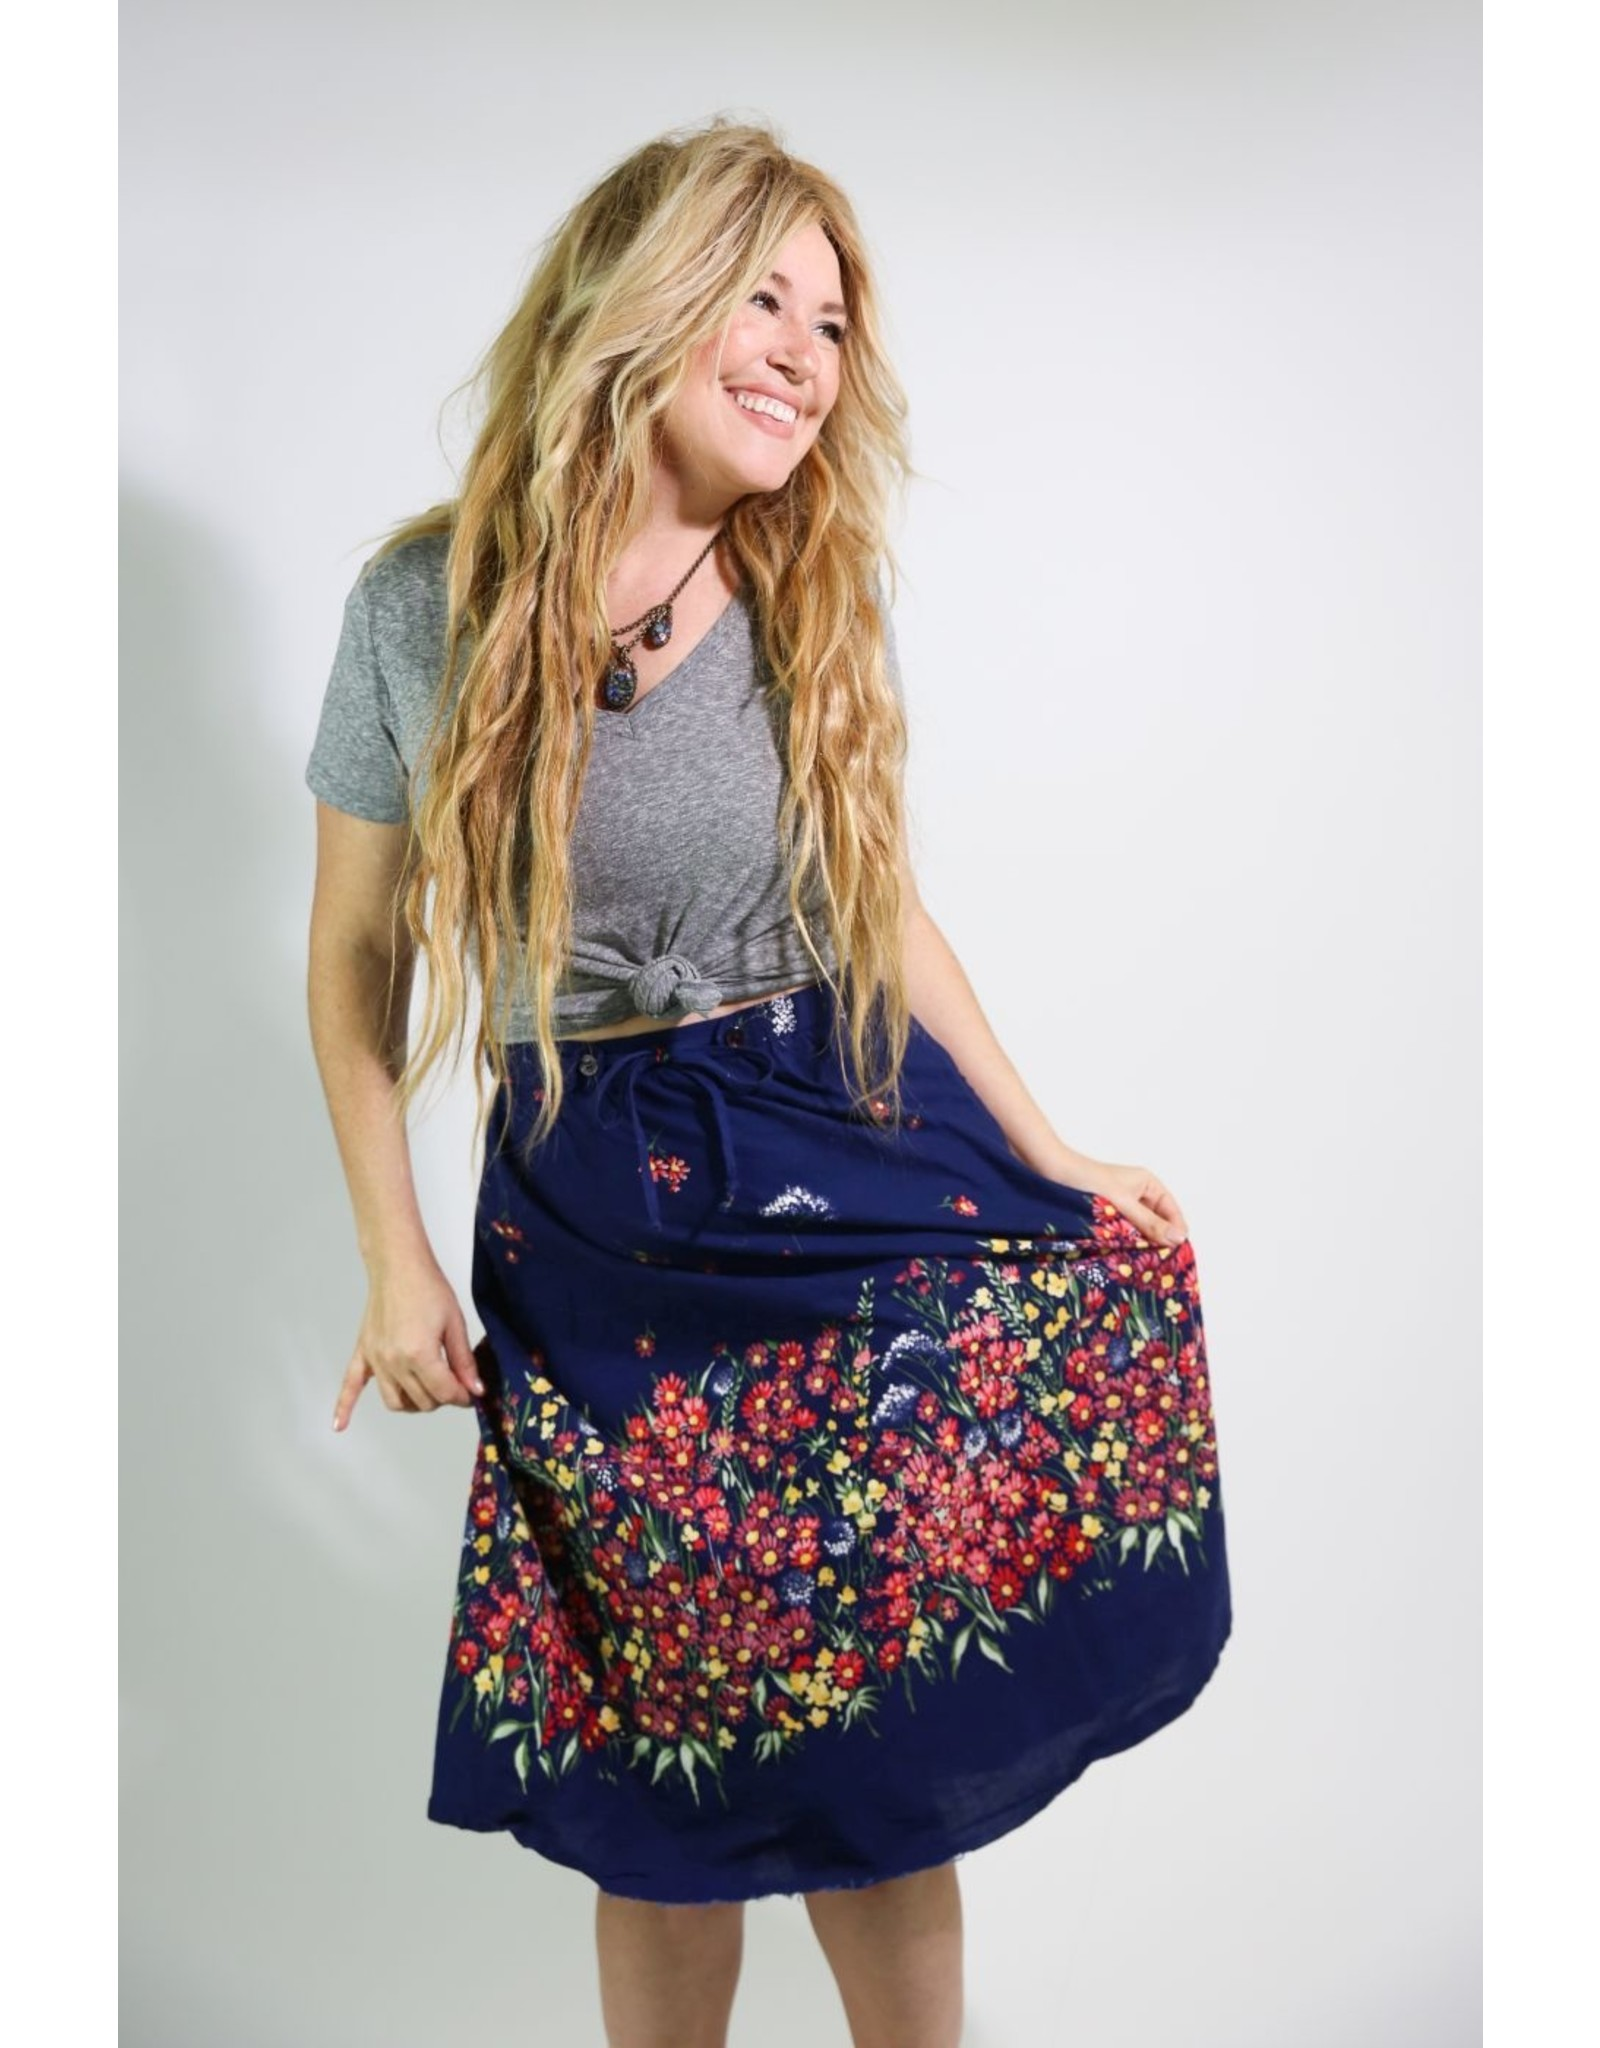 1970's  Navy Blue Skirt with Flowers